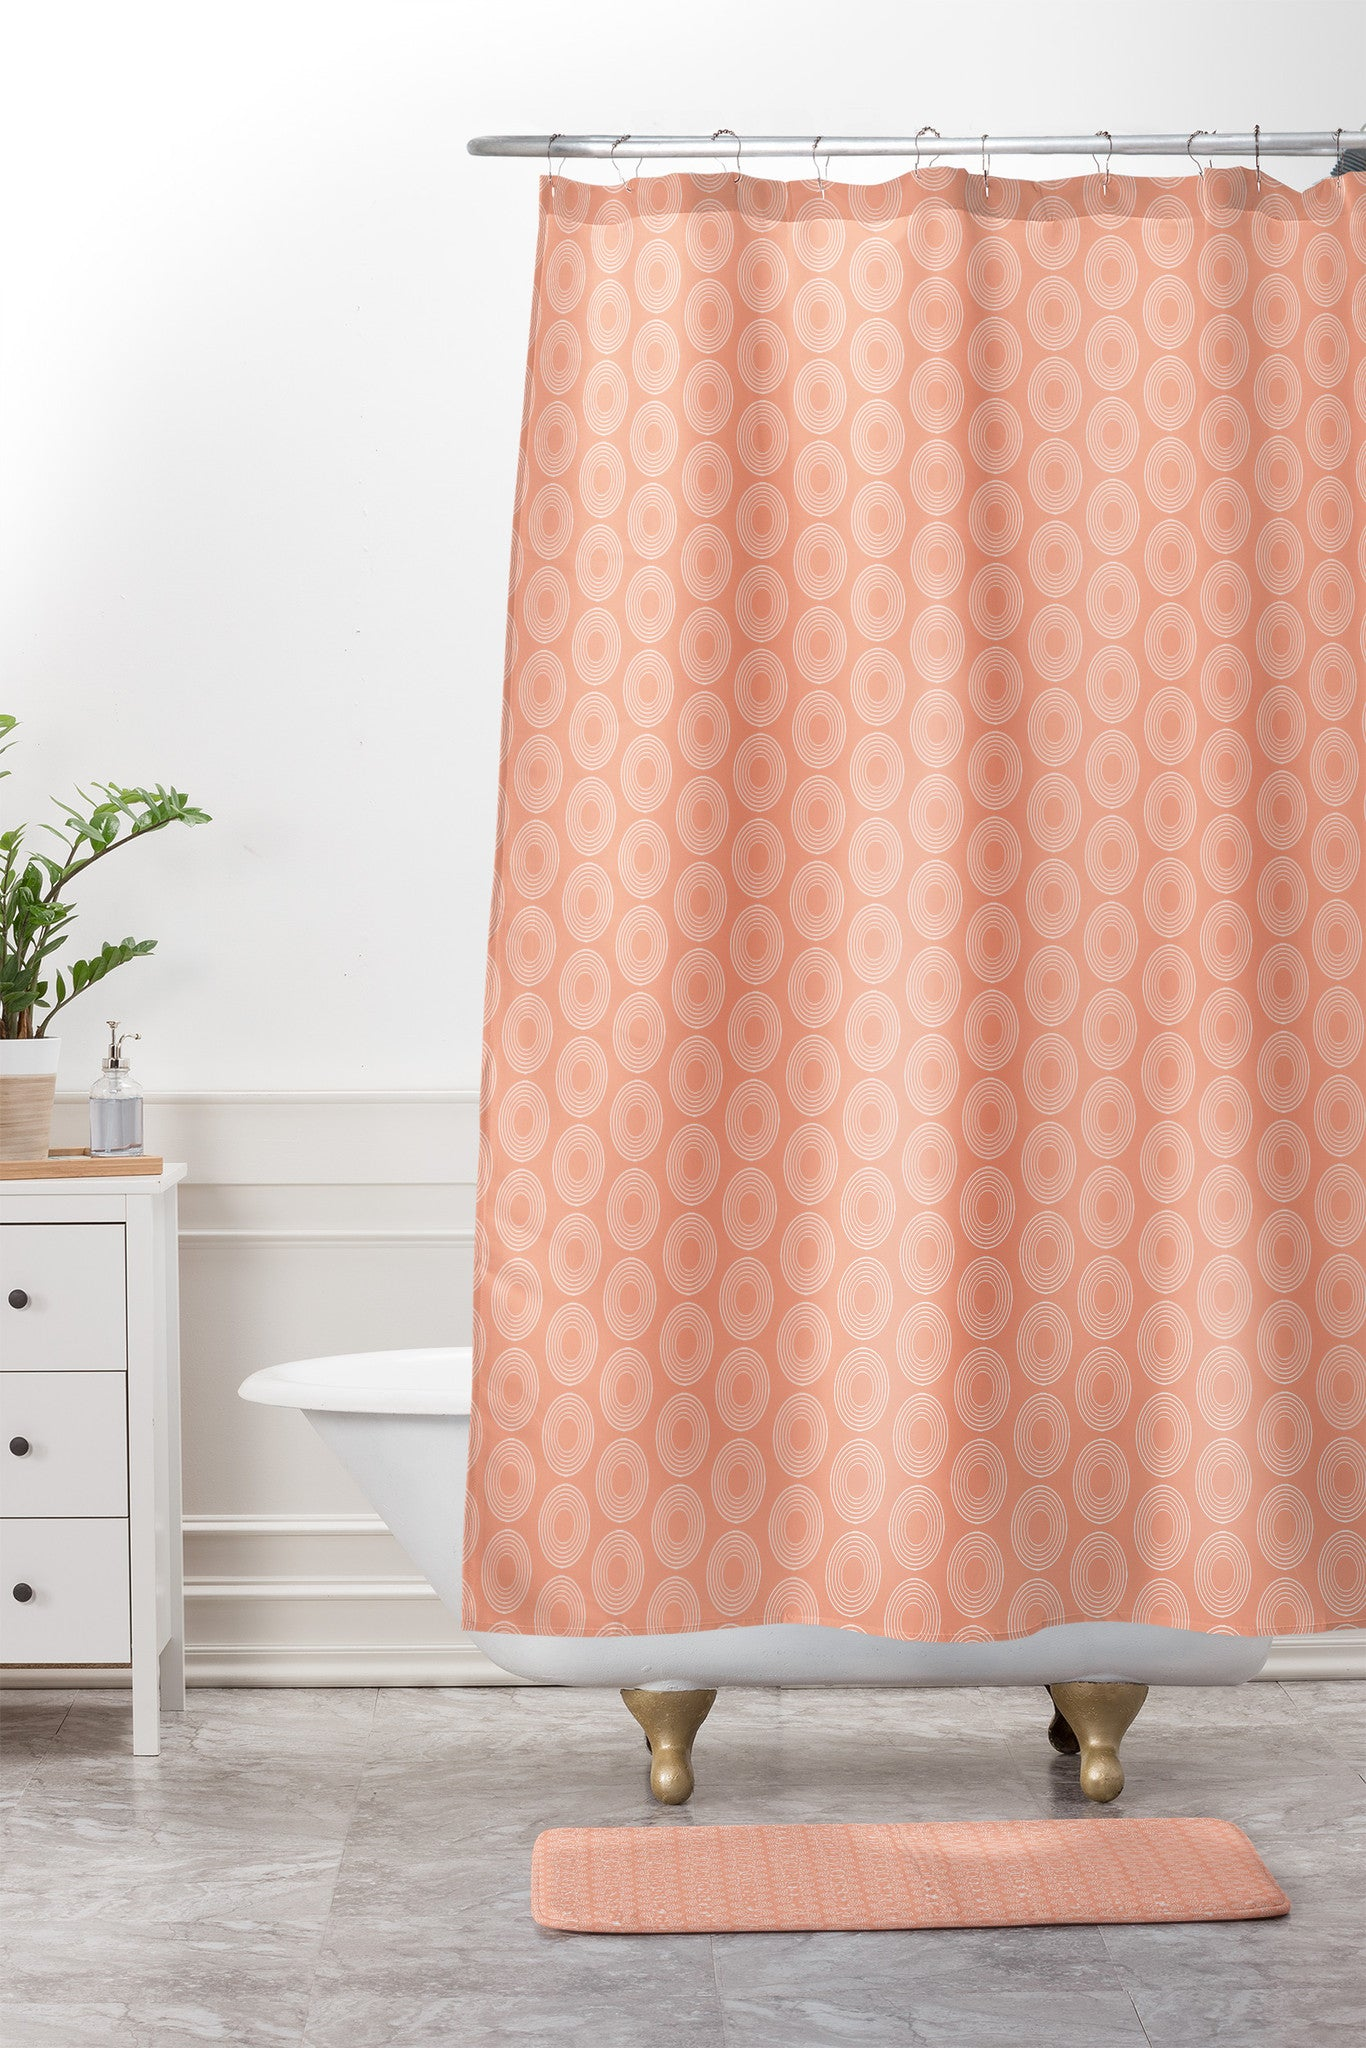 Caroline Okun Mod Pink Circles Shower Curtain And Mat